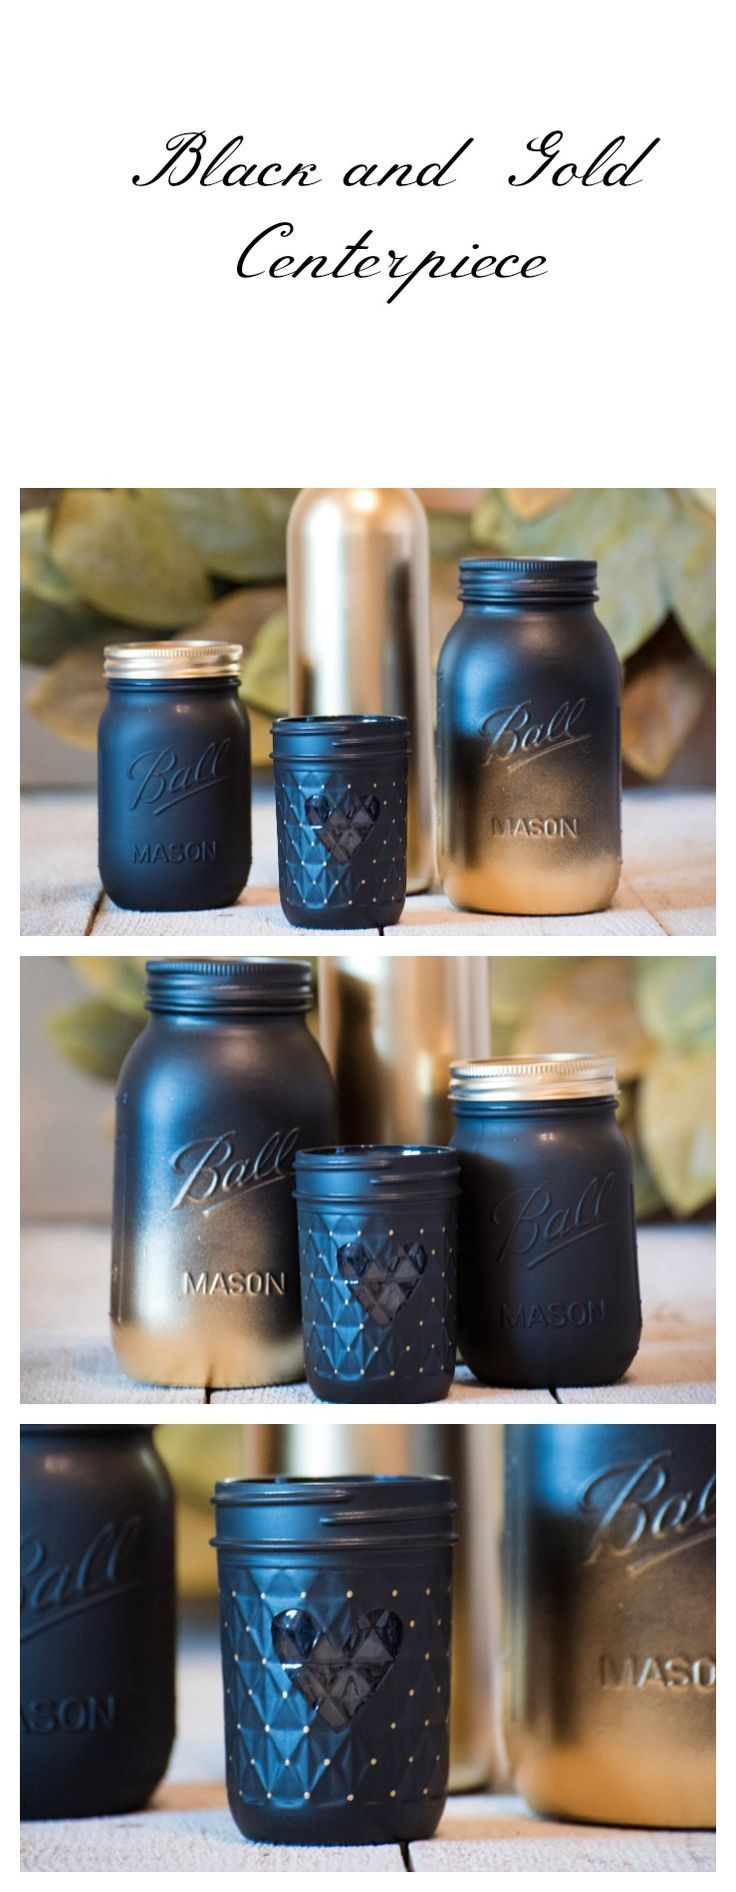 pictures of wedding centerpieces using mason jars%0A Mason Jar and Wine Bottle Wedding Centerpiece  Ombre Modern Decor  Gold and  Black Rustic